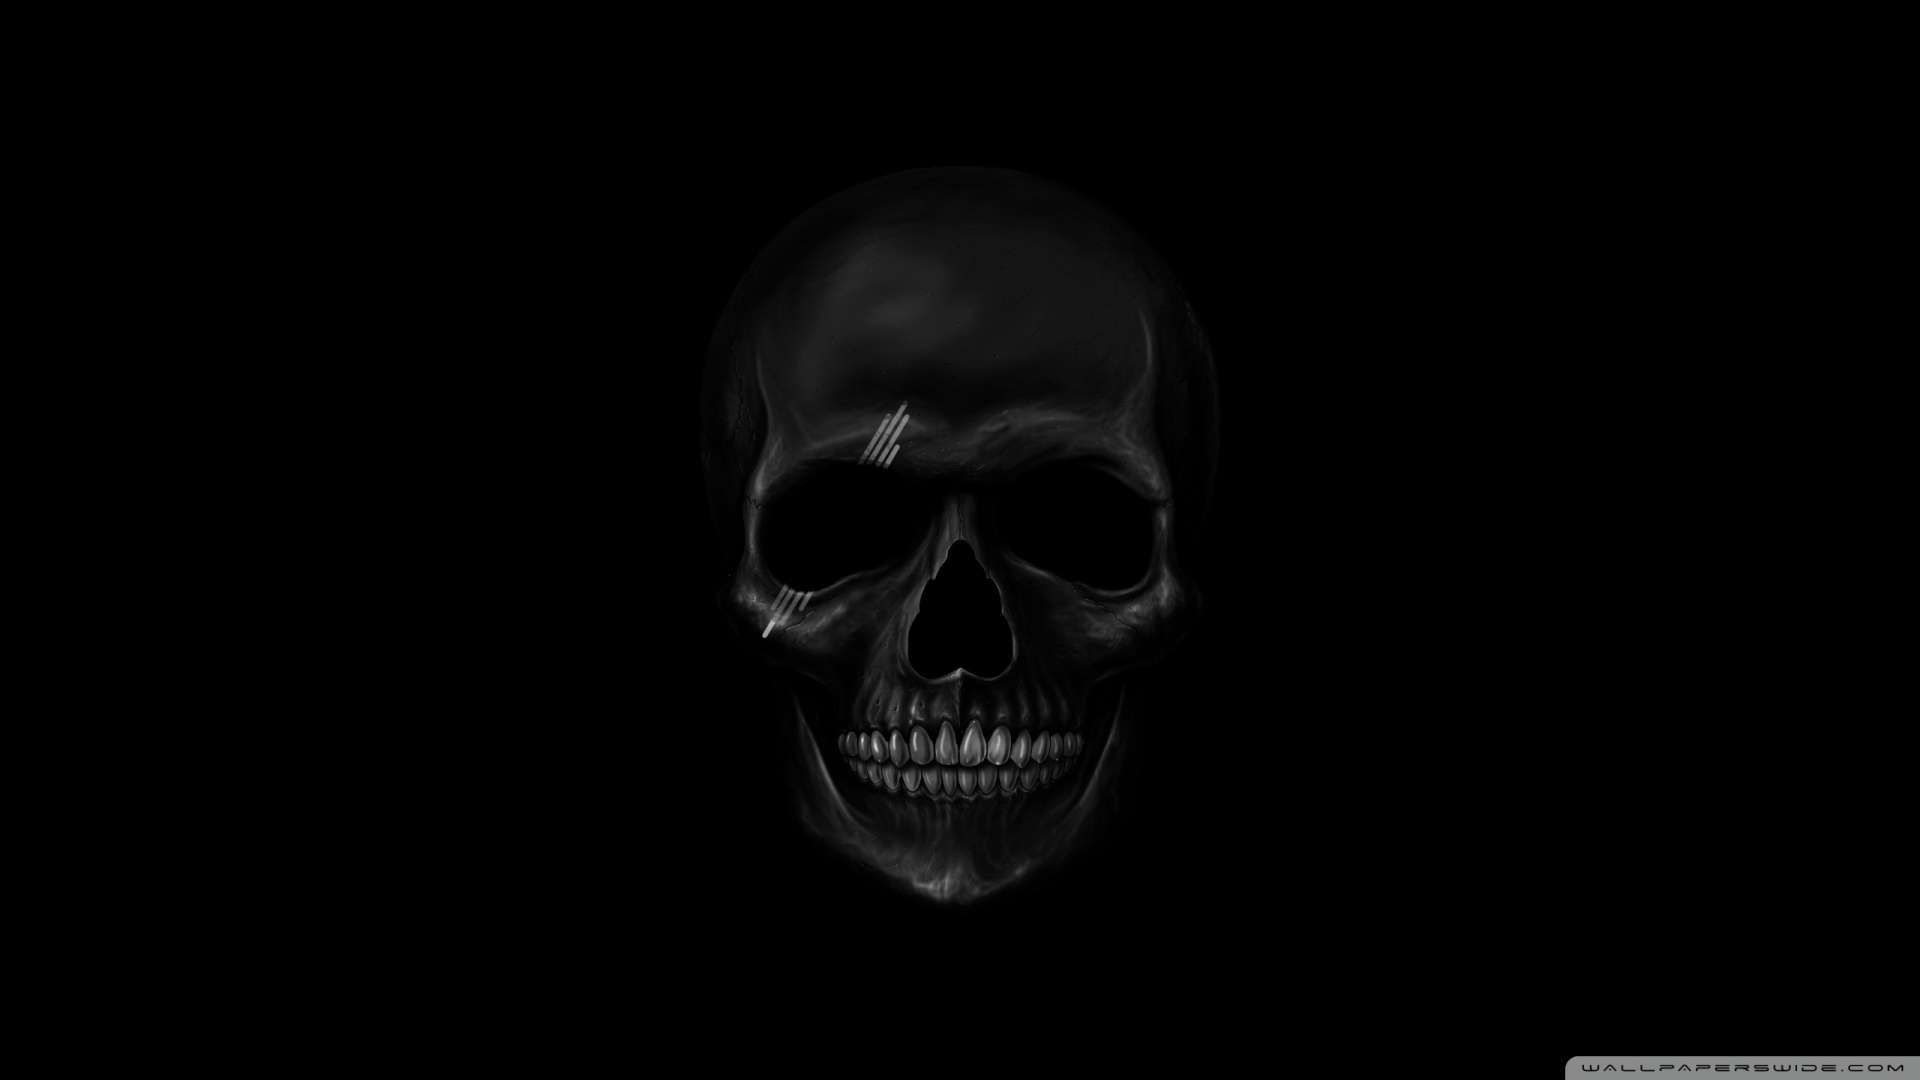 39 Awesome Black Wallpaper Hd 1080p Images Black Hd Wallpaper Hd Skull Wallpapers Skull Wallpaper